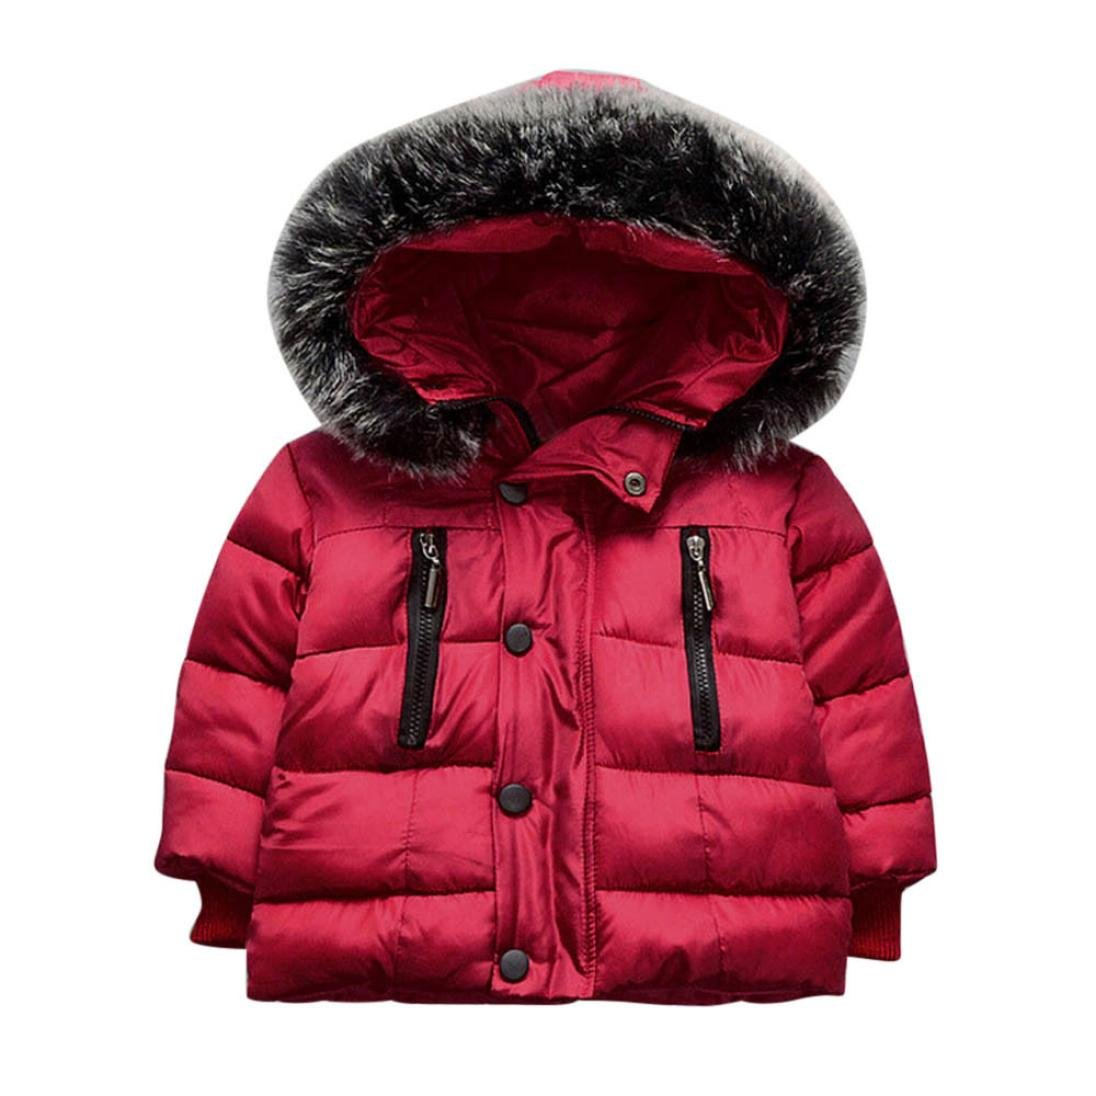 Gotd Baby Girl Boy Winter Thick Cotton Hooded Coat Jacket Thick Warm Clothes